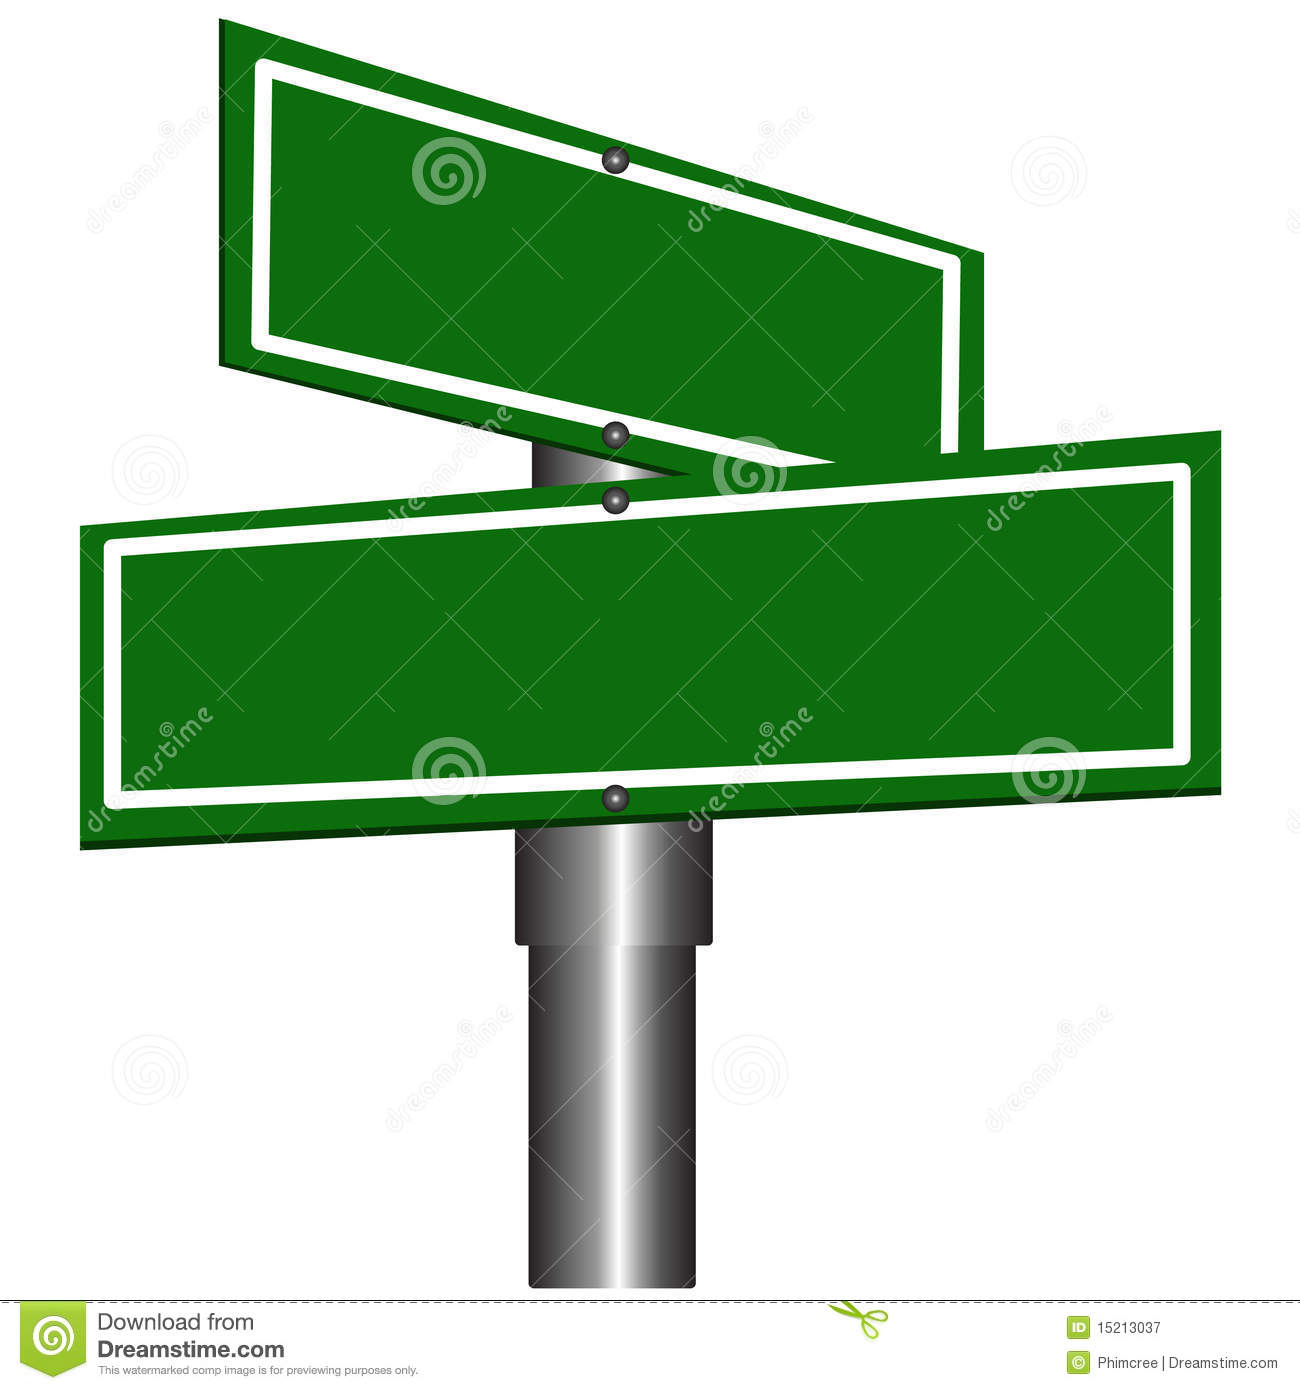 Blank Street Signs Royalty Free Stock Photography   Image  15213037